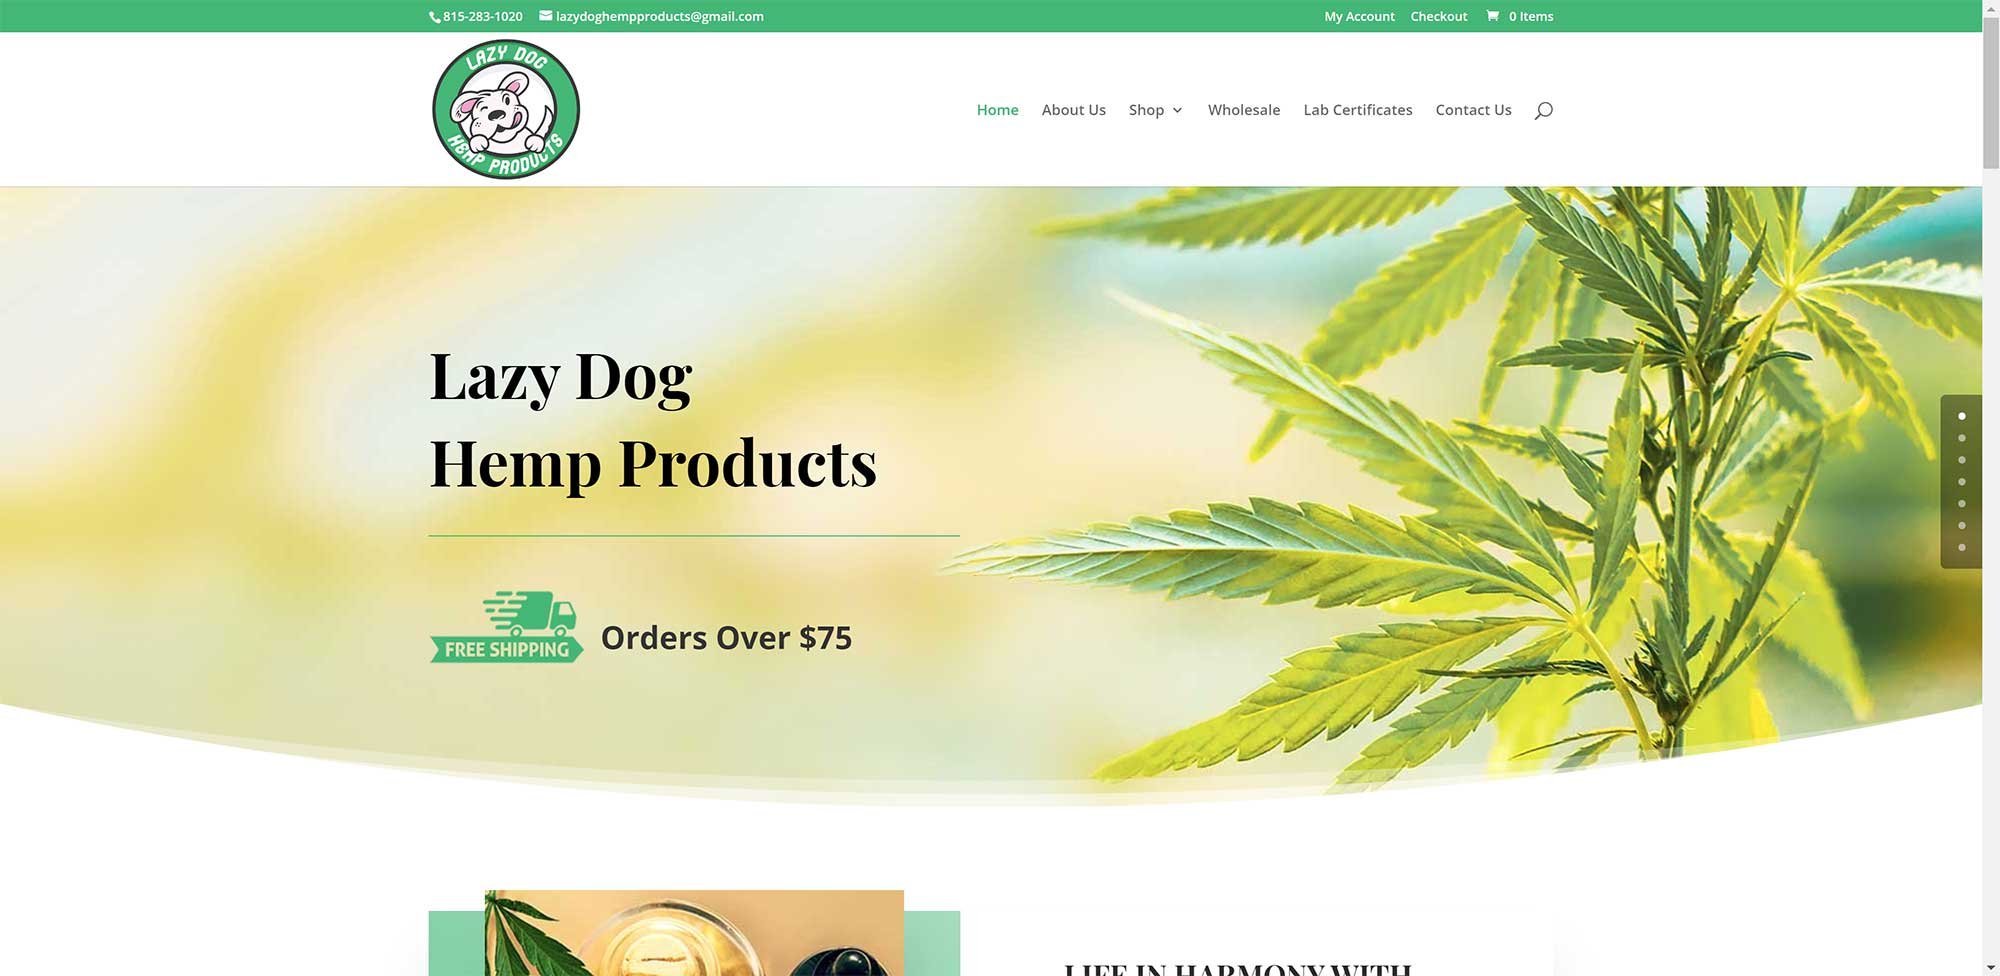 Lazy Dog Hemp Products